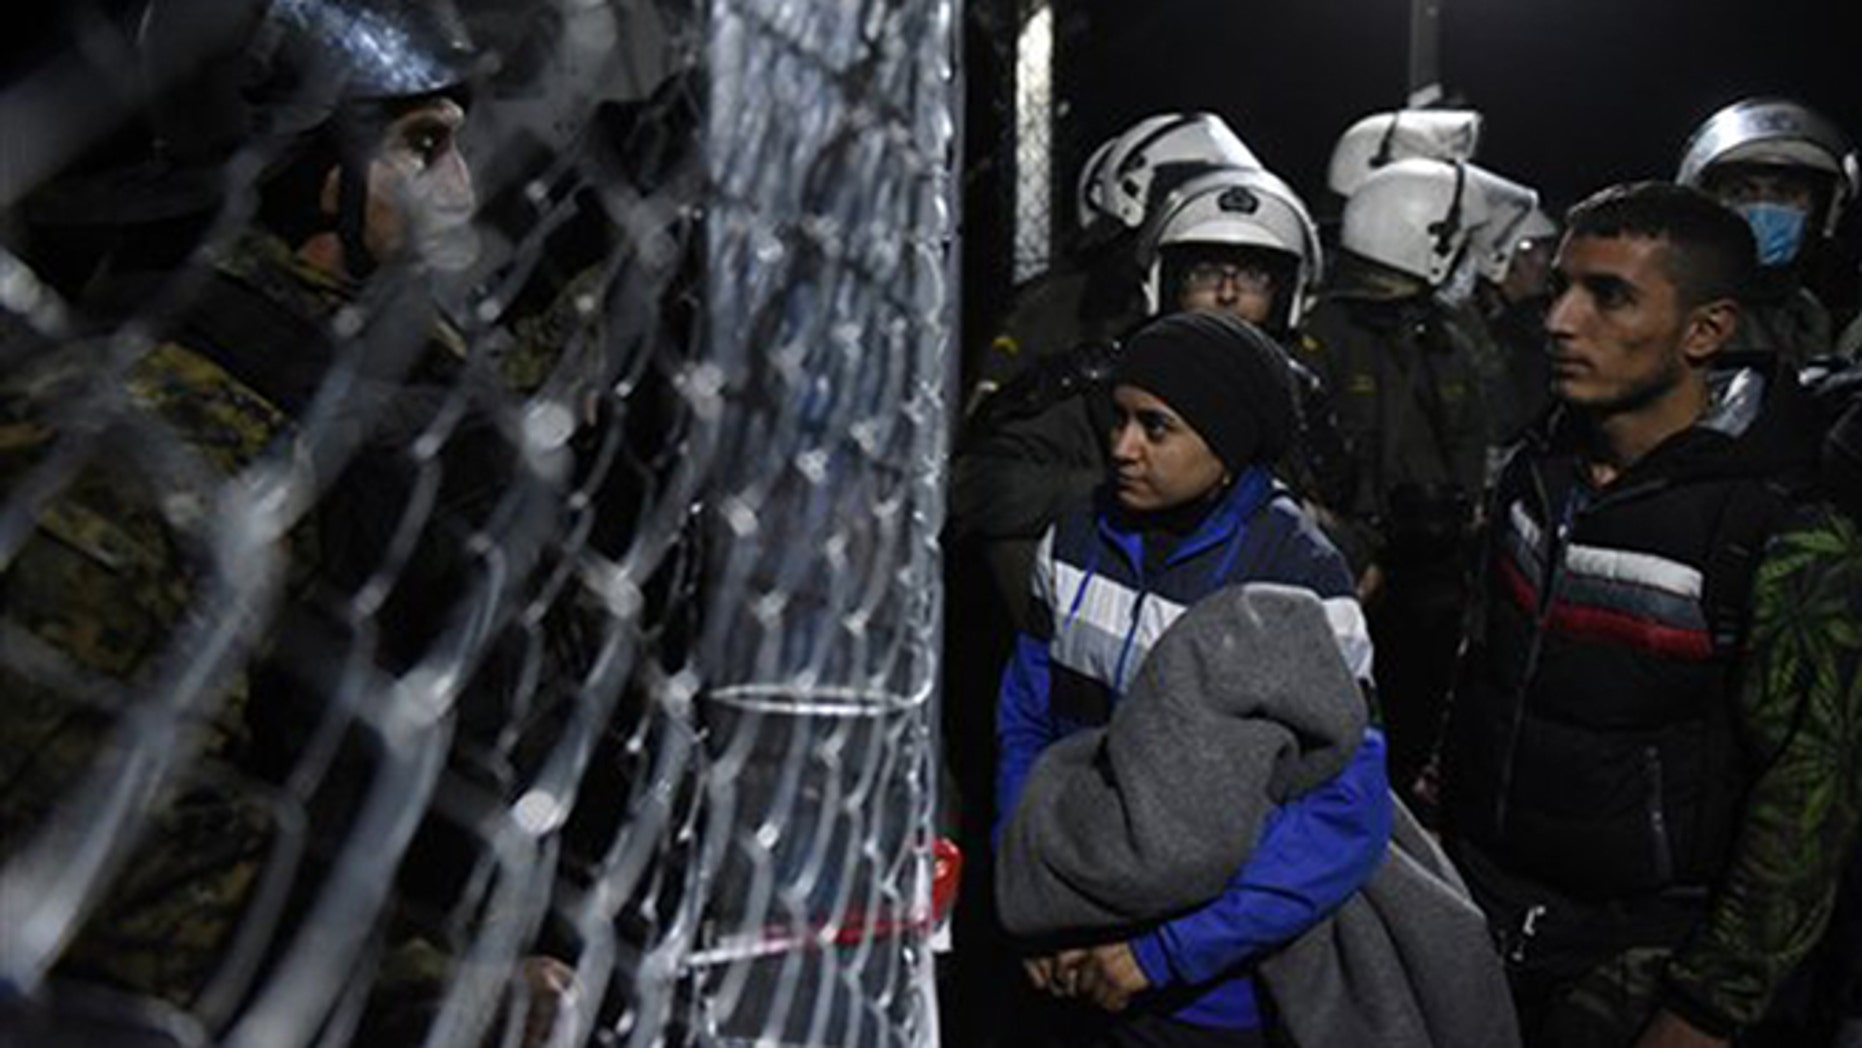 Refugees wait to cross the Greek-Macedonian border as policemen from both sides stand guard, near the northern Greek village of Idomeni, Thursday, Dec. 3, 2015. Greek riot police struggled to restore order Thursday after chaotic clashes between asylum-seekers at the country's border with Macedonia. (AP Photo/Giannis Papanikos)